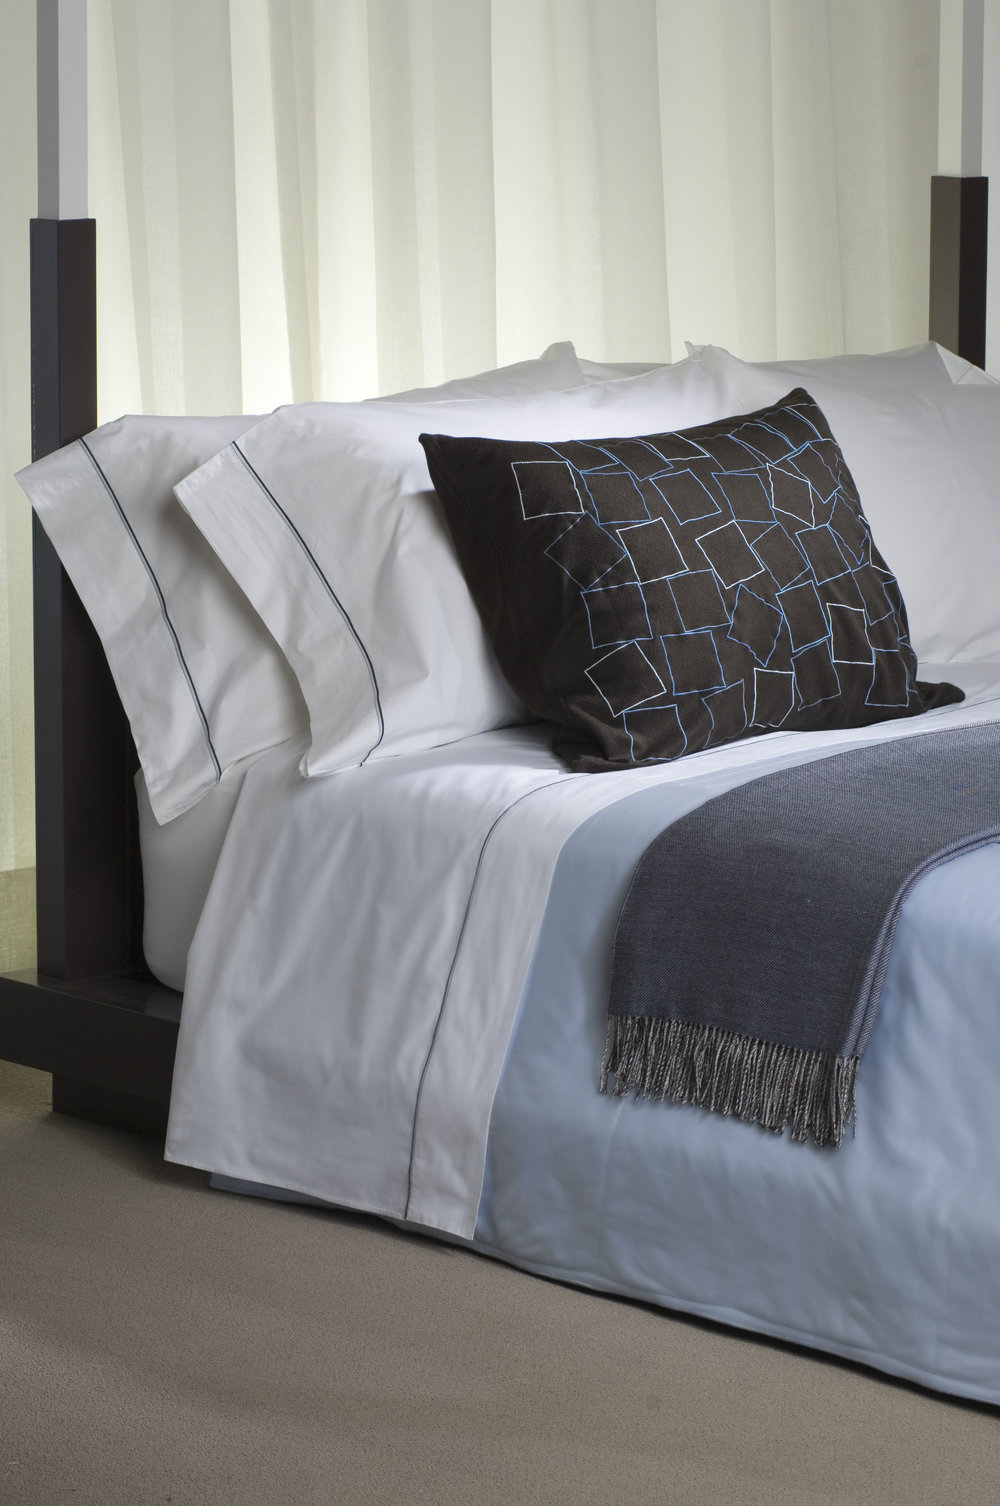 Modern designed home with sateen linens in black with blue embroidered details.